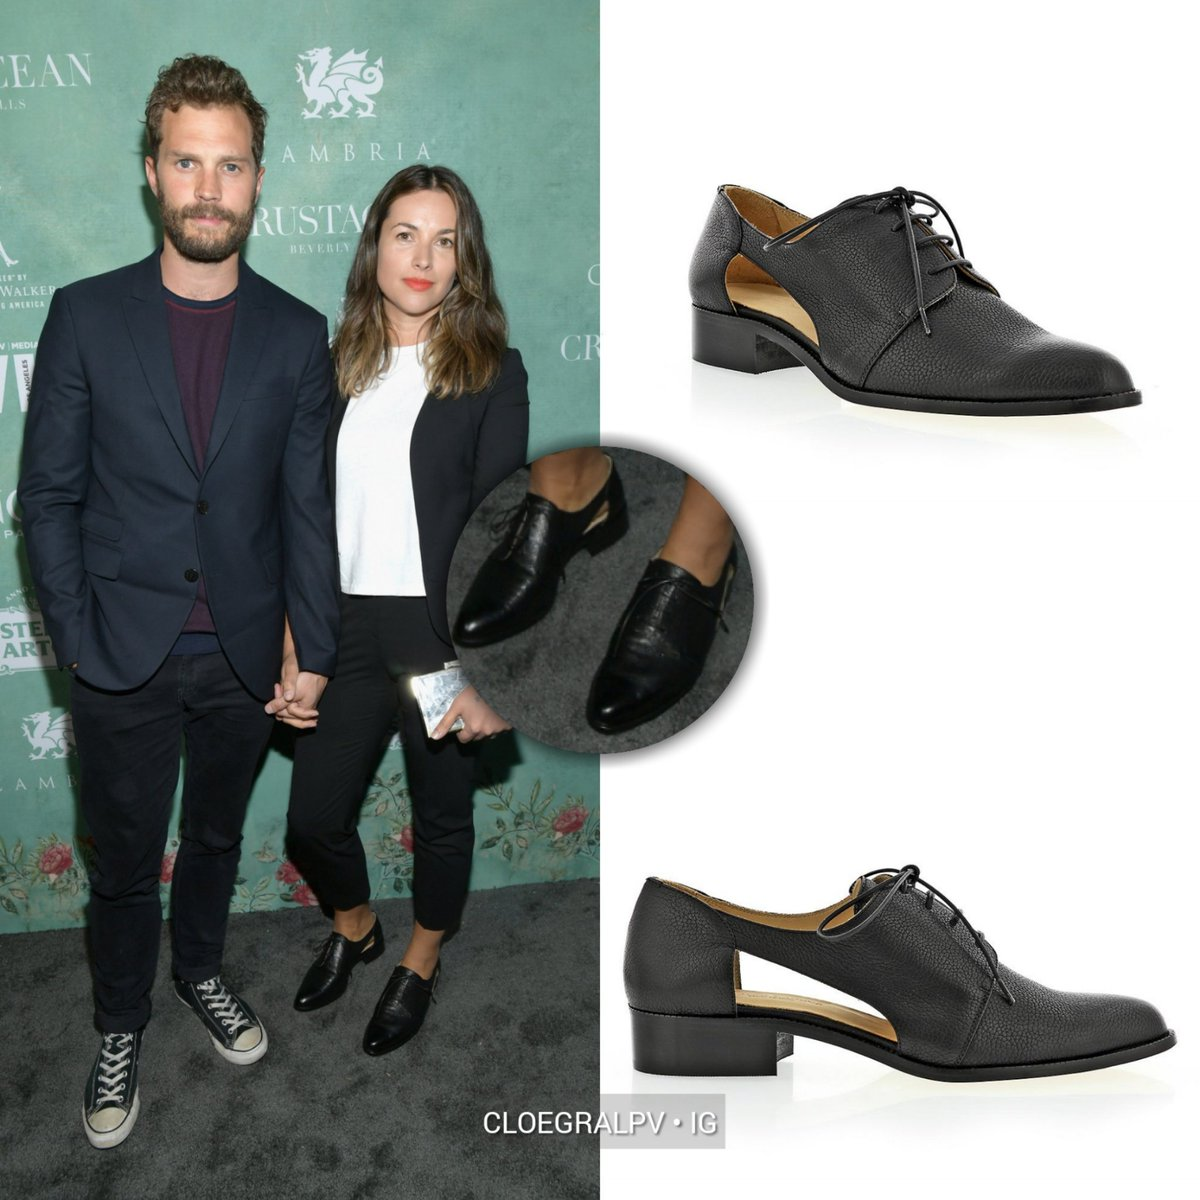 • NEW FIND • Amelia with Jamie at the Women in Films Pre-Oscar Party, LA |March 2nd, 2018| wearing #MarcoPadova Cutout Pointed Laceup Loafer ($485) worn with @theory__ Good Wool Clean Blazer ($395) and Good Wool Classic Slim Crop Pants ($275) and @vincecamuto Yoko Clutch<br>http://pic.twitter.com/klcHRiG4YW